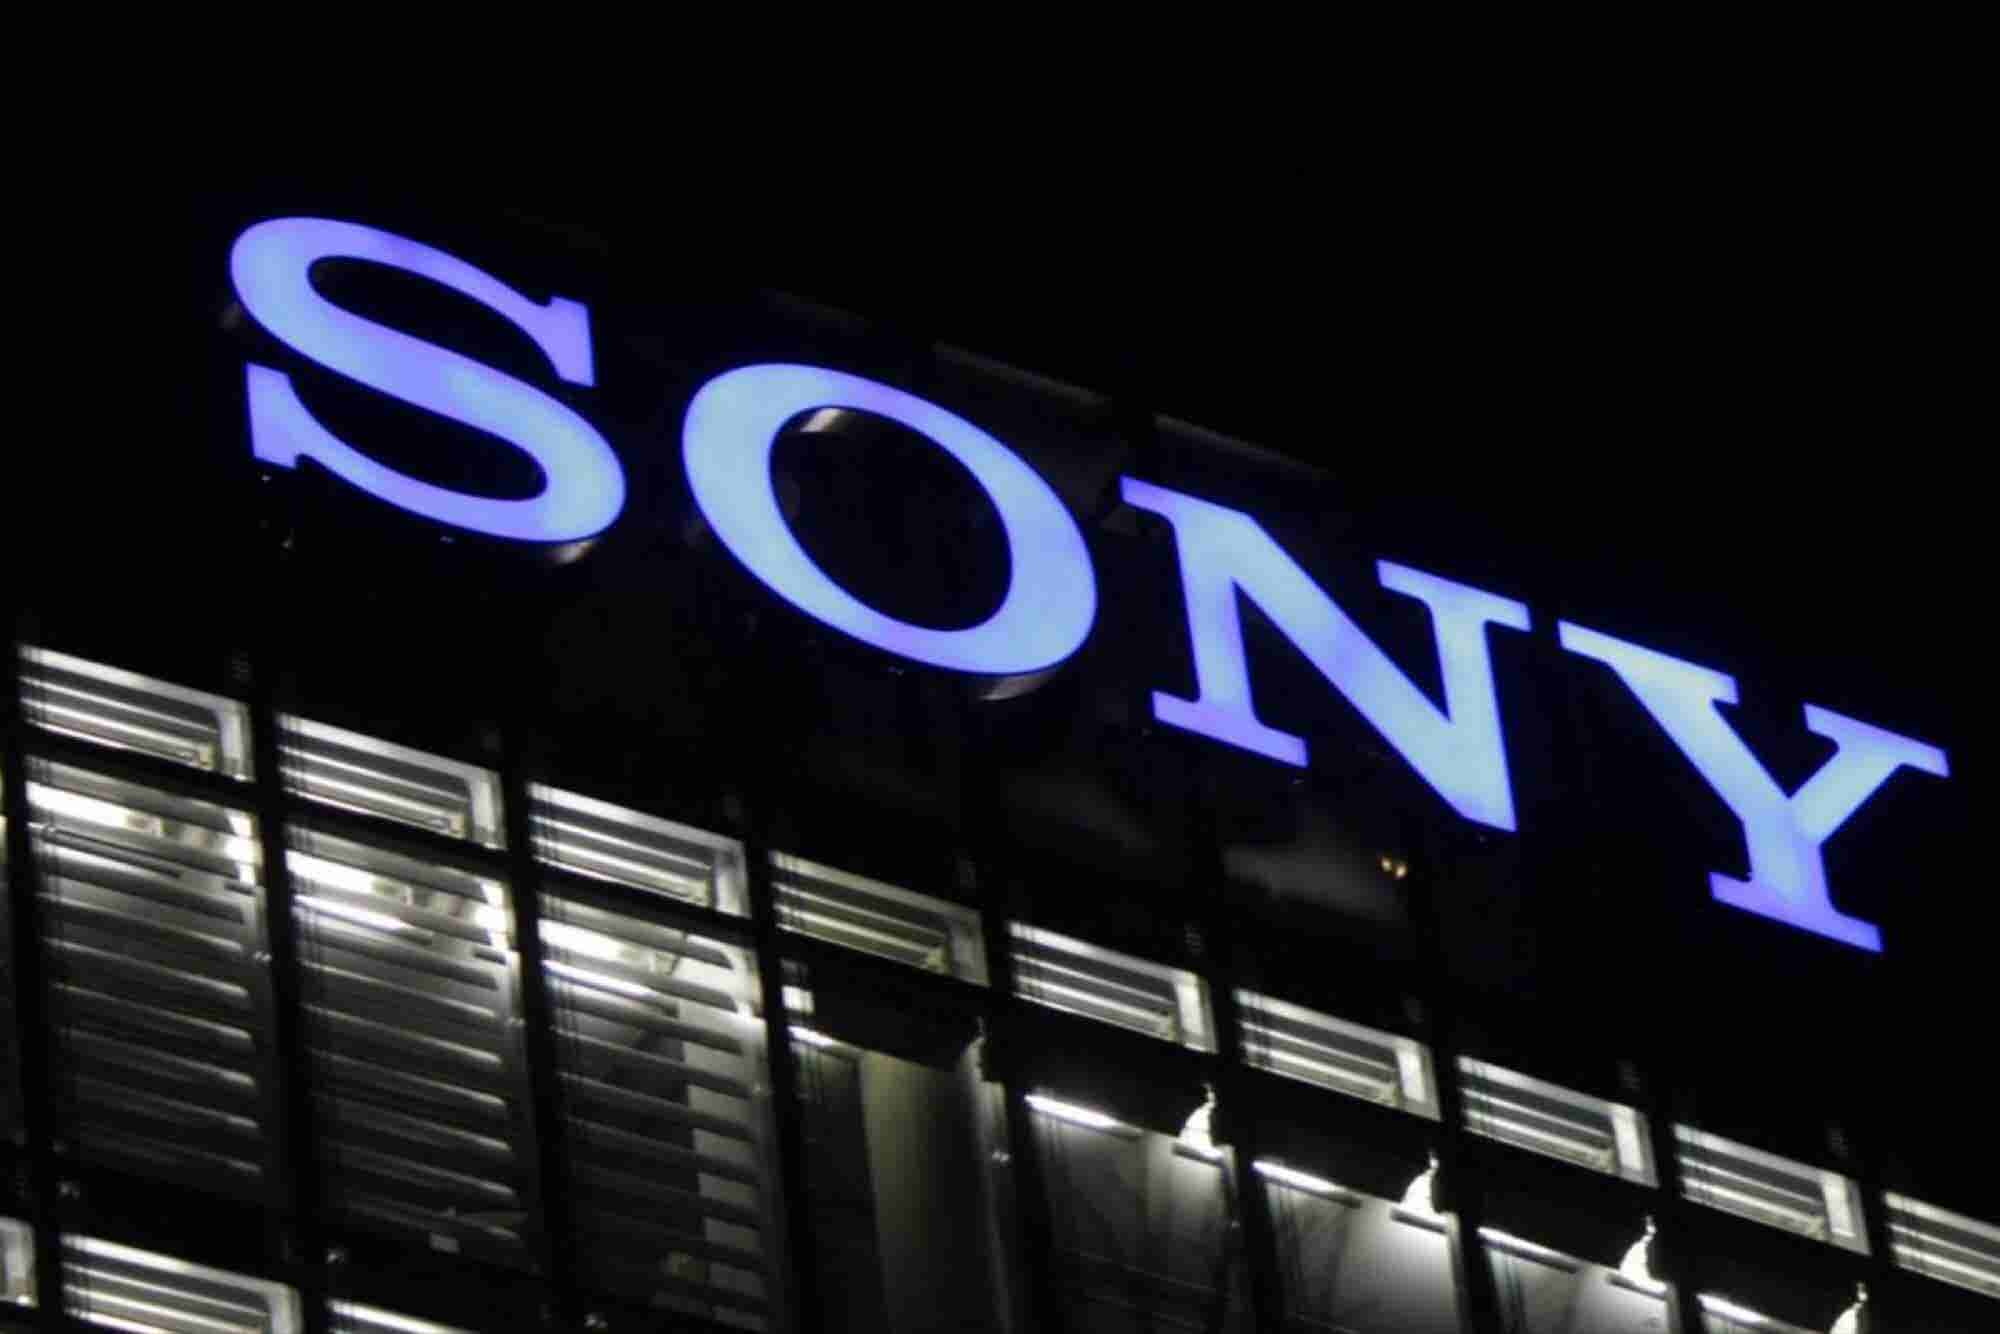 Get This: Sony Hack Reveals Company Stored Passwords in Folder Labeled 'Password'